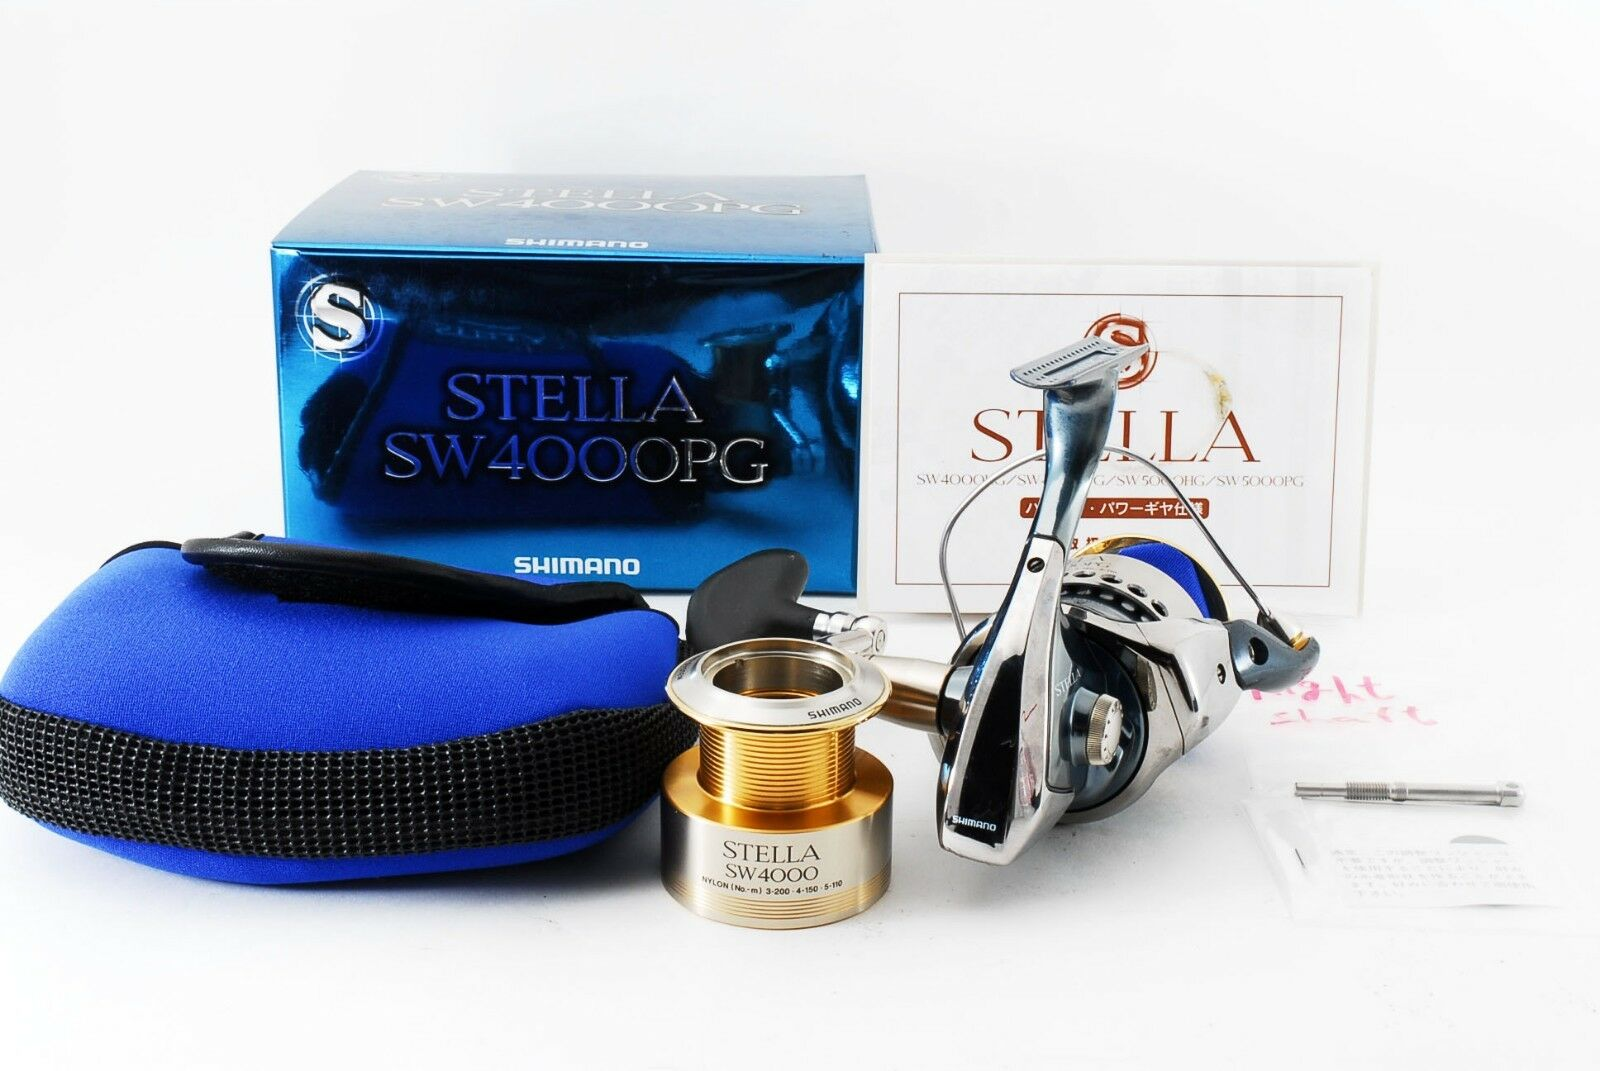 Excellent++  Shimano 01 Stella SW 4000 PG Spinning Reel 270364  take up to 70% off